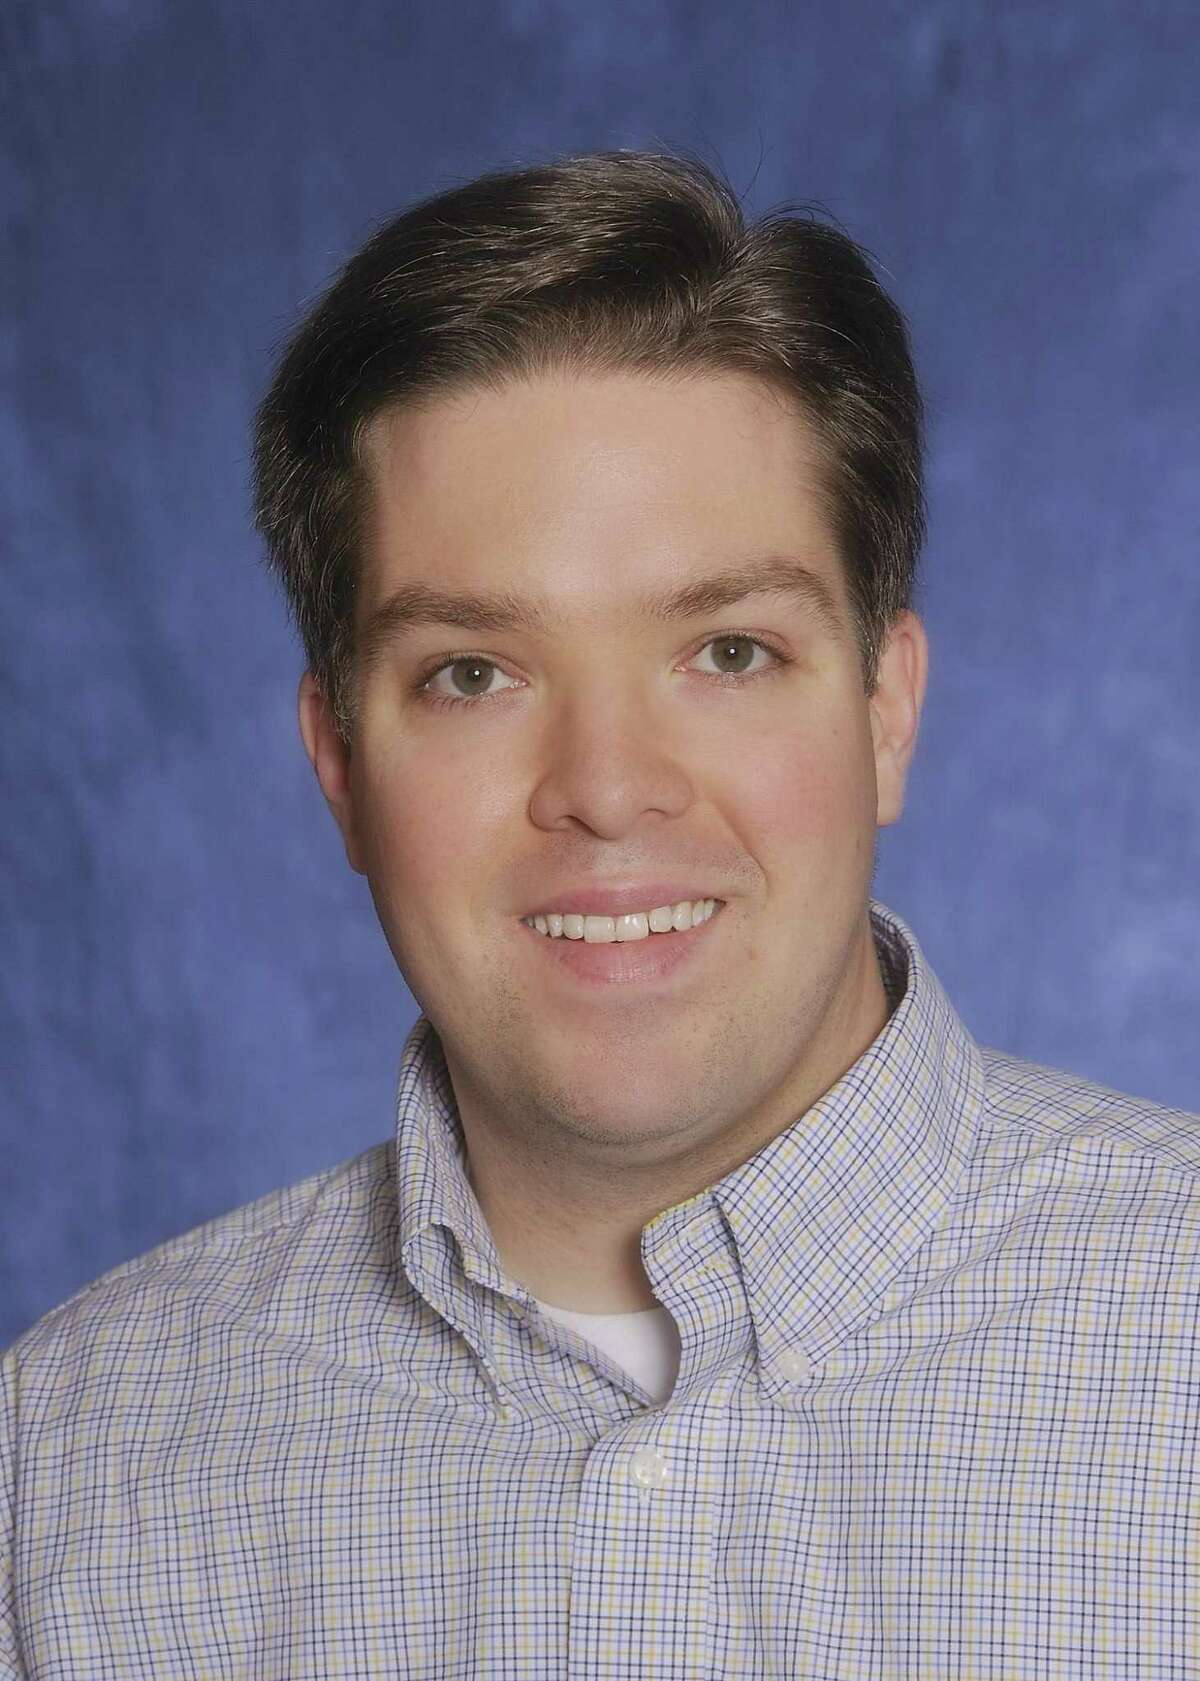 Brian Hermann is an assistant professor in the Department of Biology at the University of Texas at San Antonio